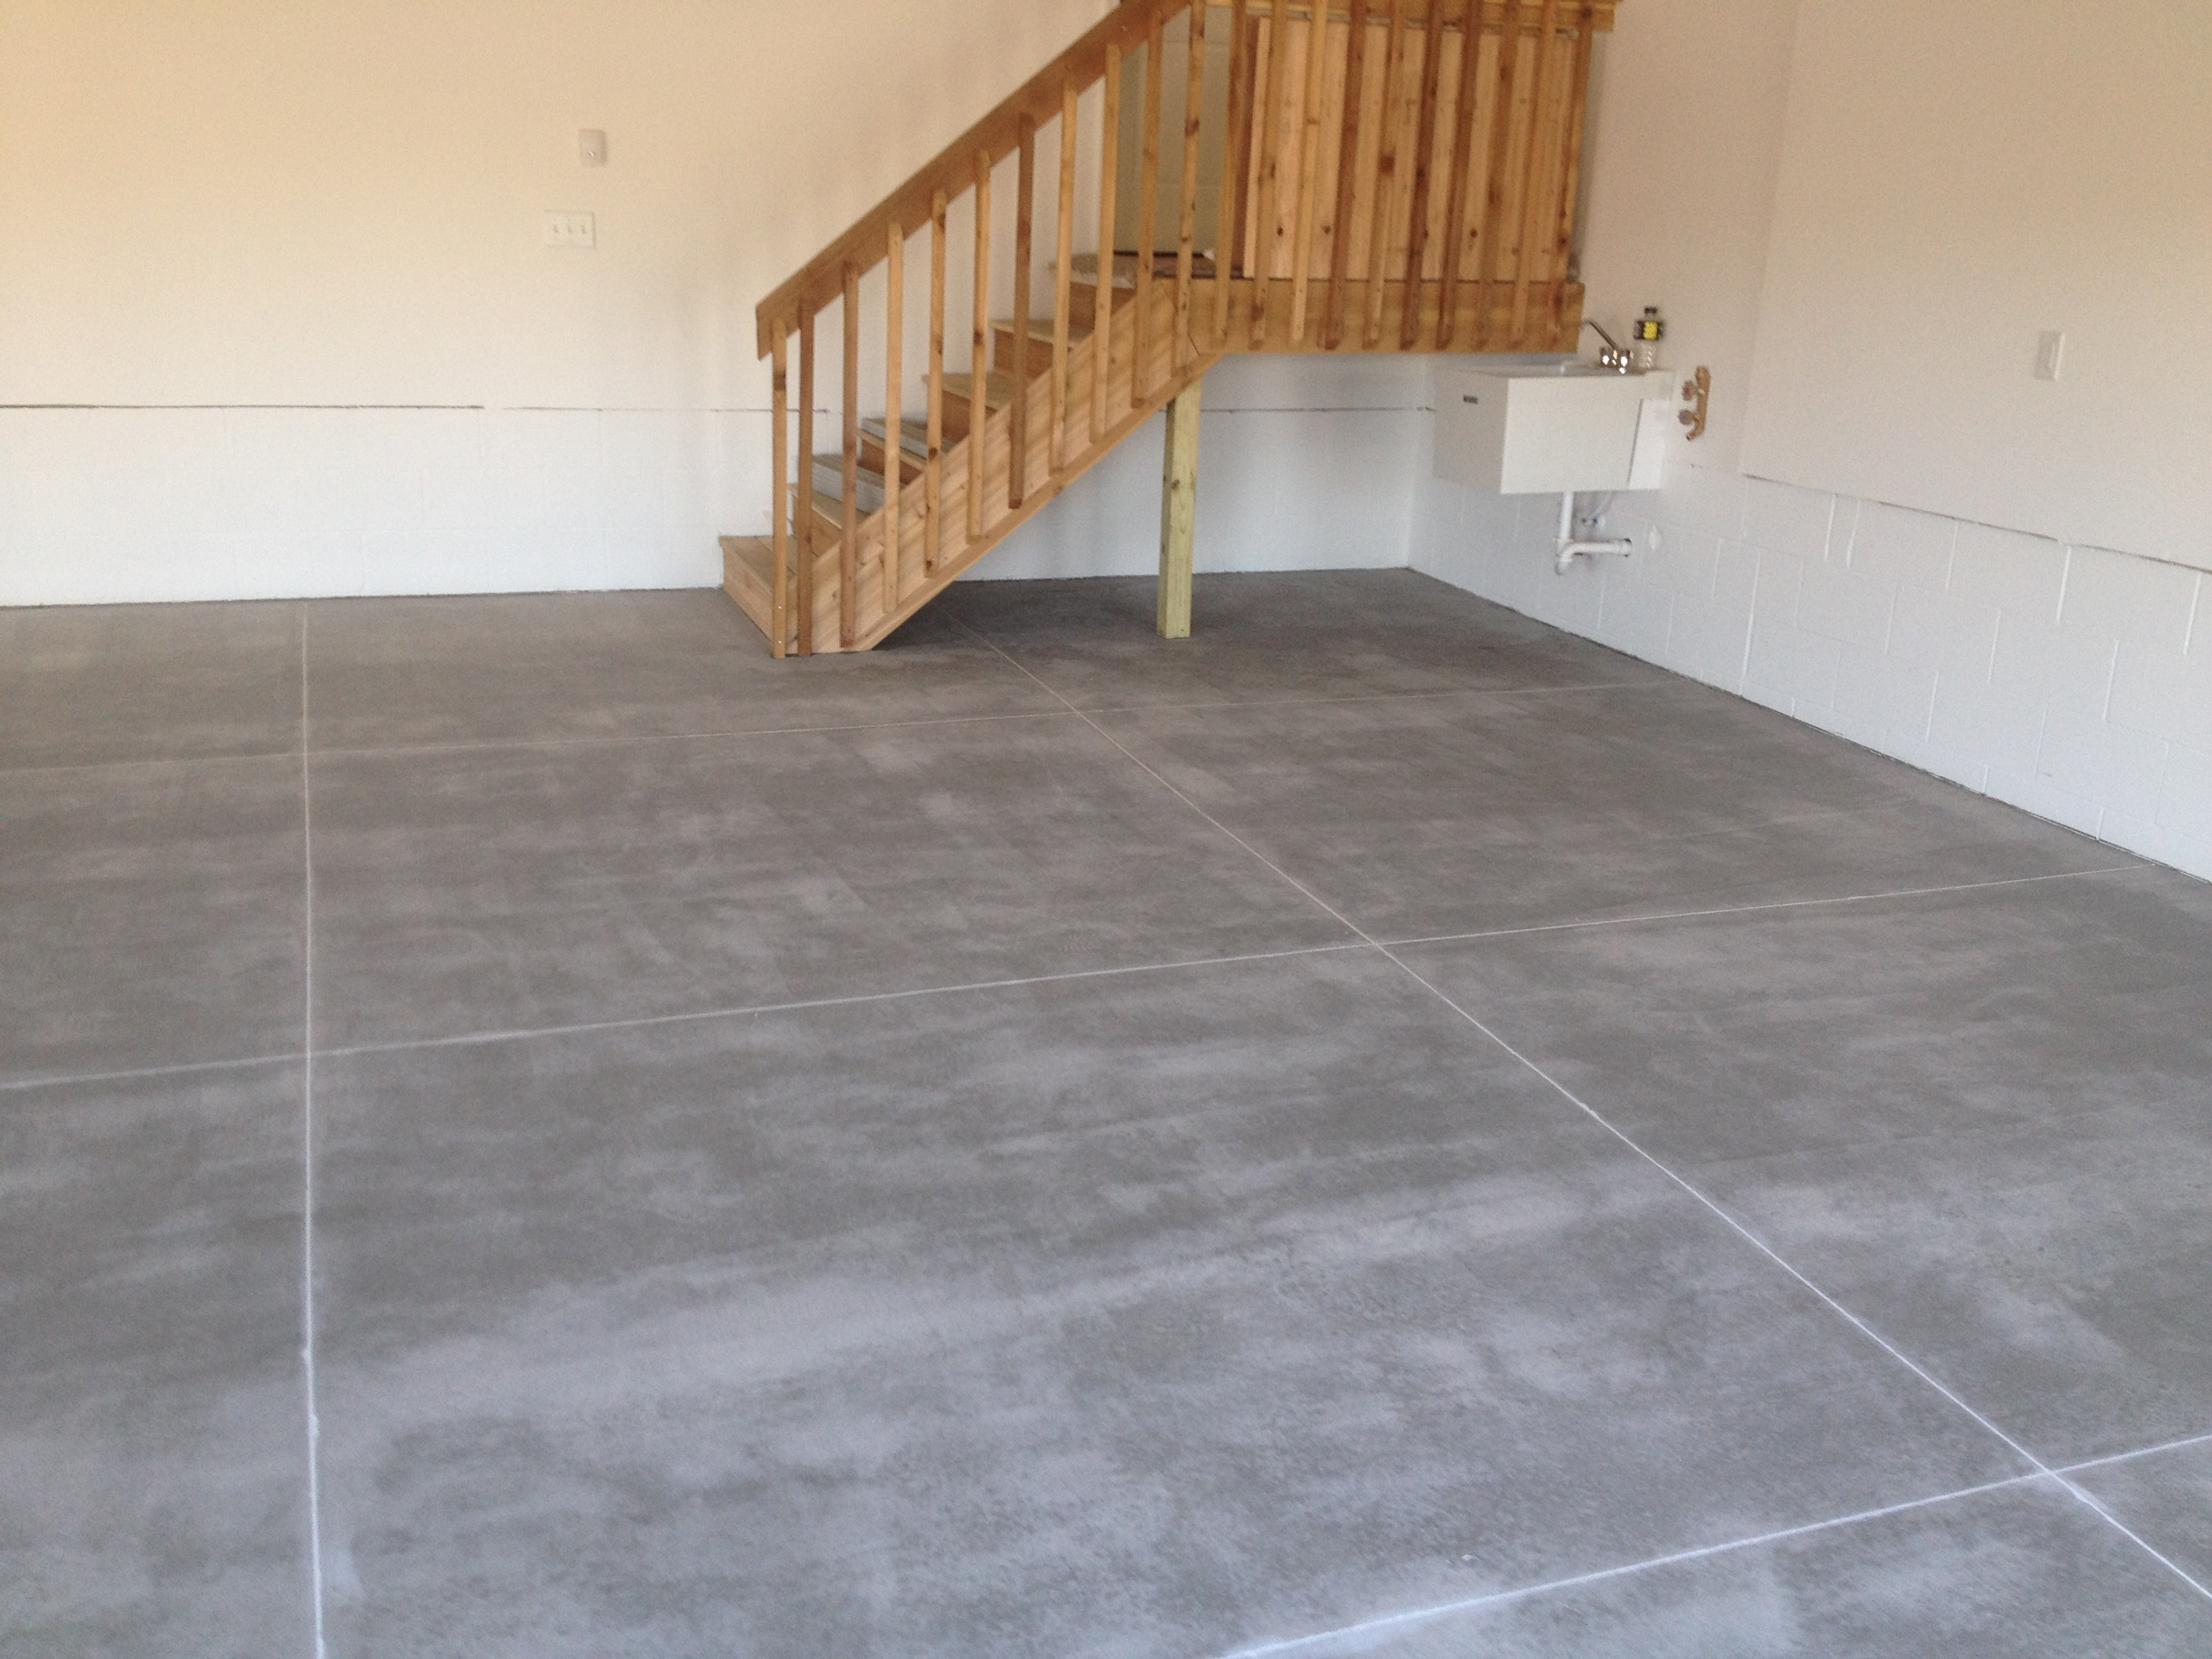 Garage Floor Concrete Repair In Minnesota Concrete Coating Systems Mn